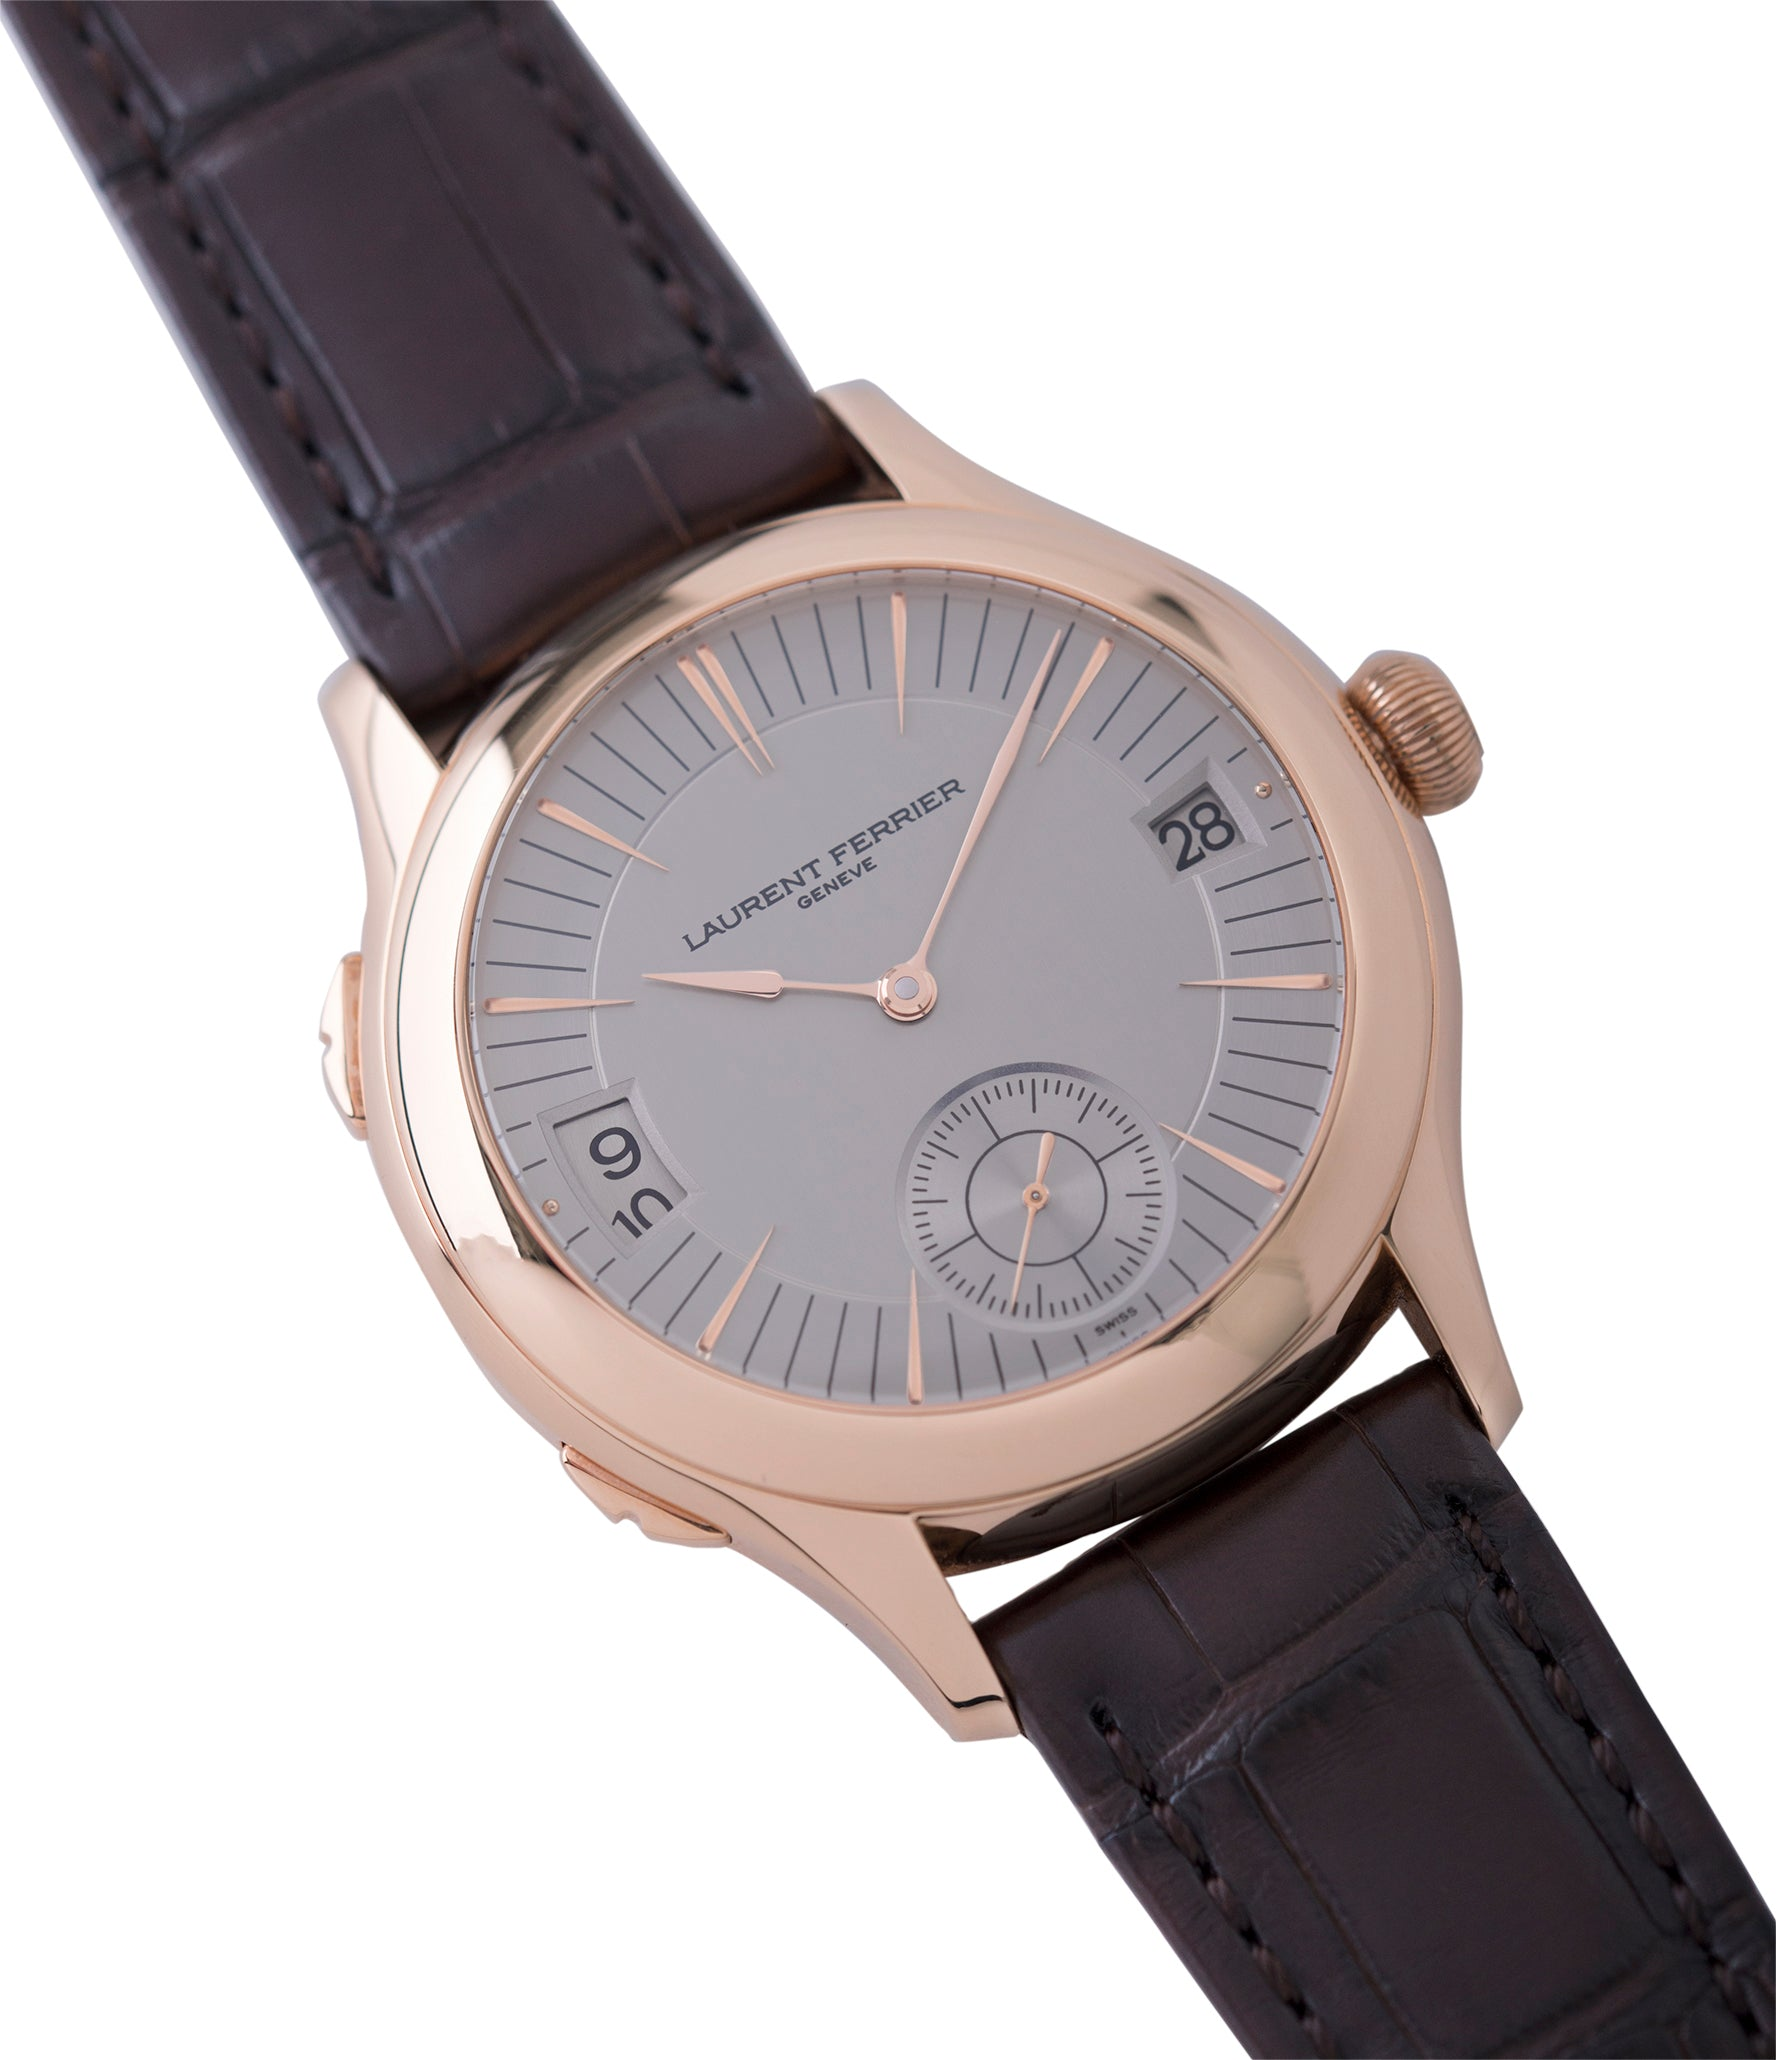 buying Laurent Ferrier Galet Traveller Micro Rotor LF 230.01 rose gold watch additional prototype dial for sale online at A Collected Man London UK approved reseller of preowned independent watchmakers